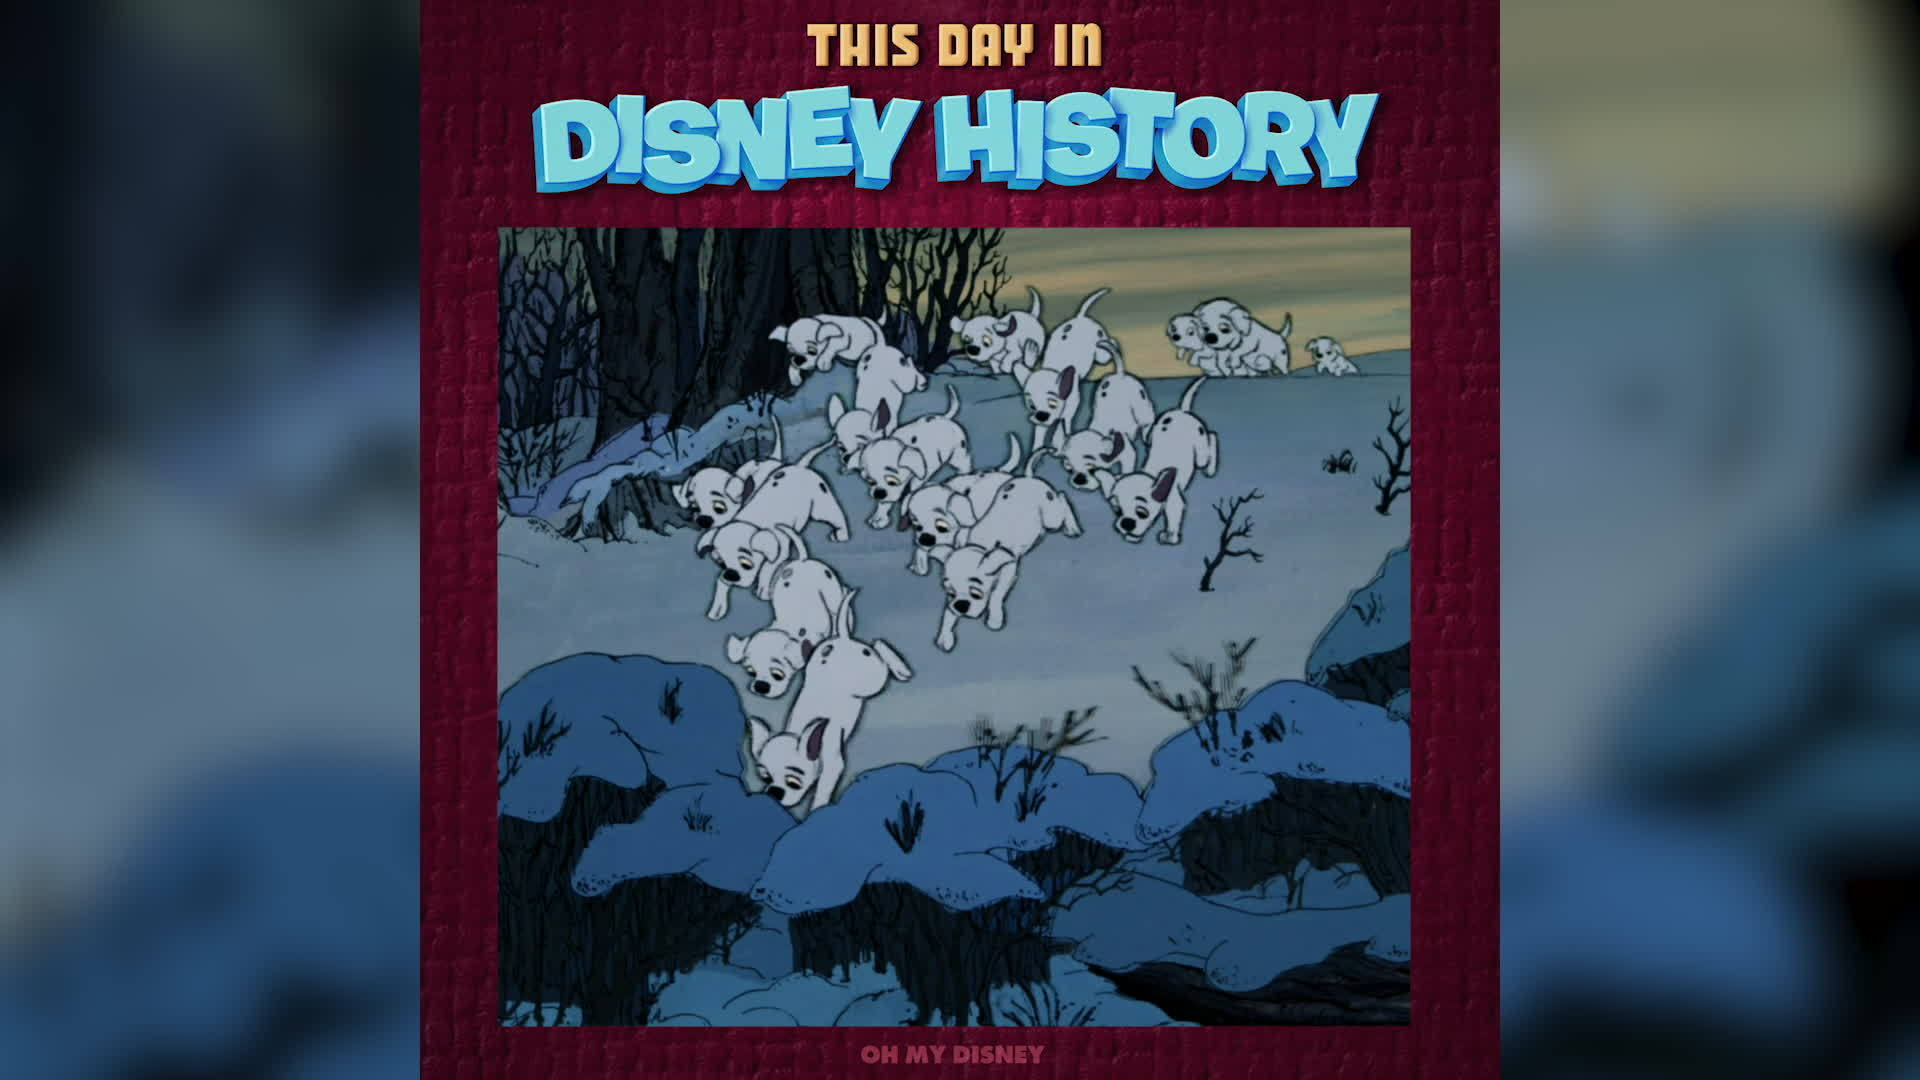 This Day in Disney History: 101 Dalmatians